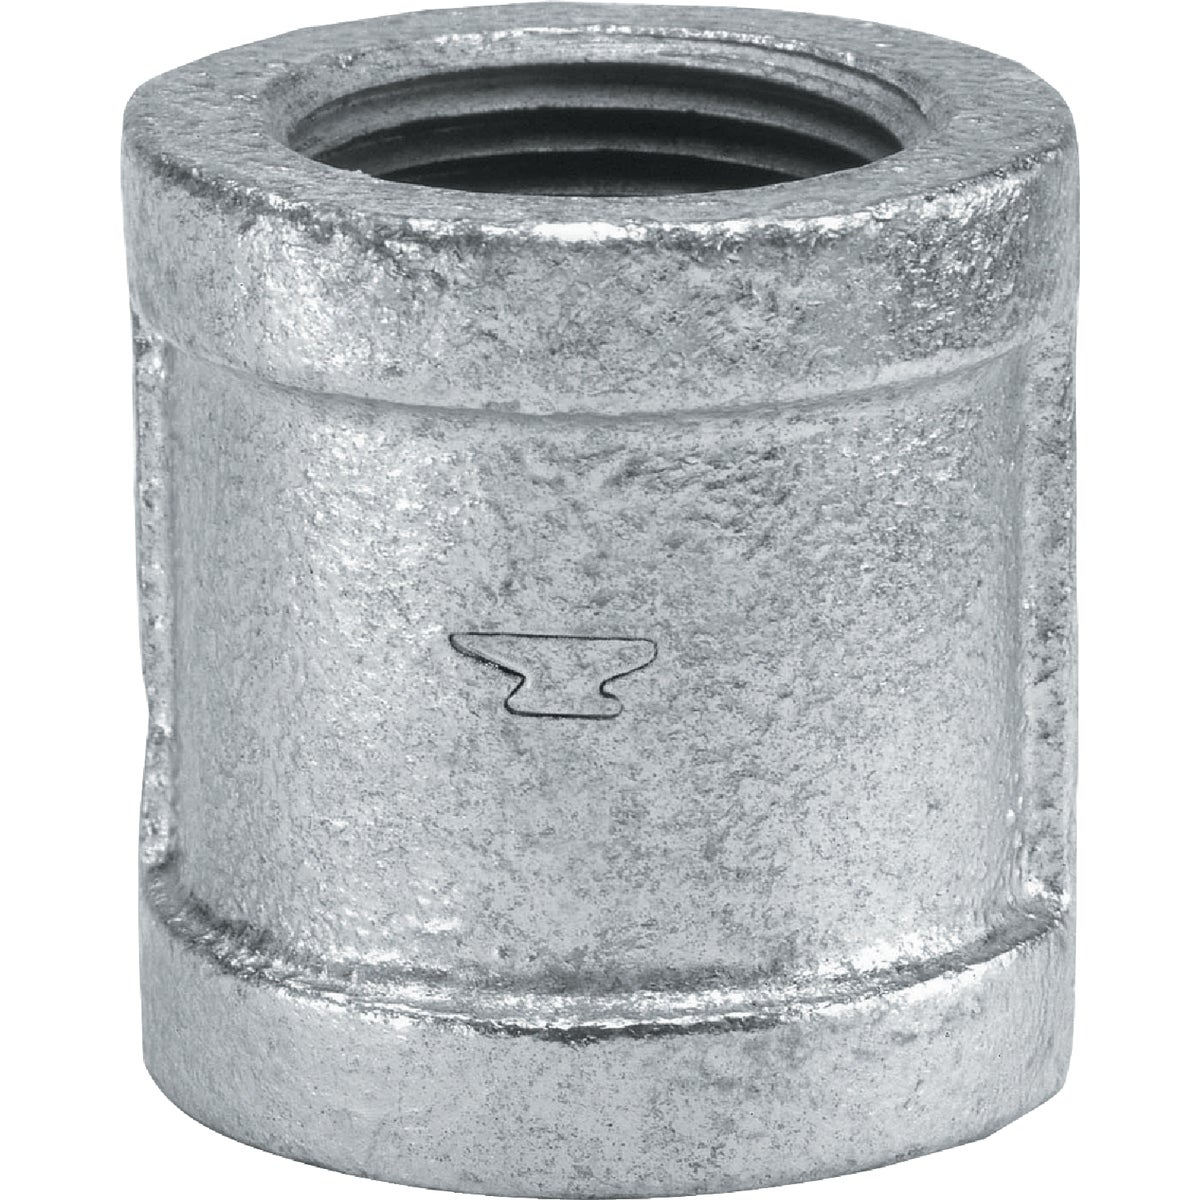 "2"" GALV COUPLING - 8700133807 by Anvil International"